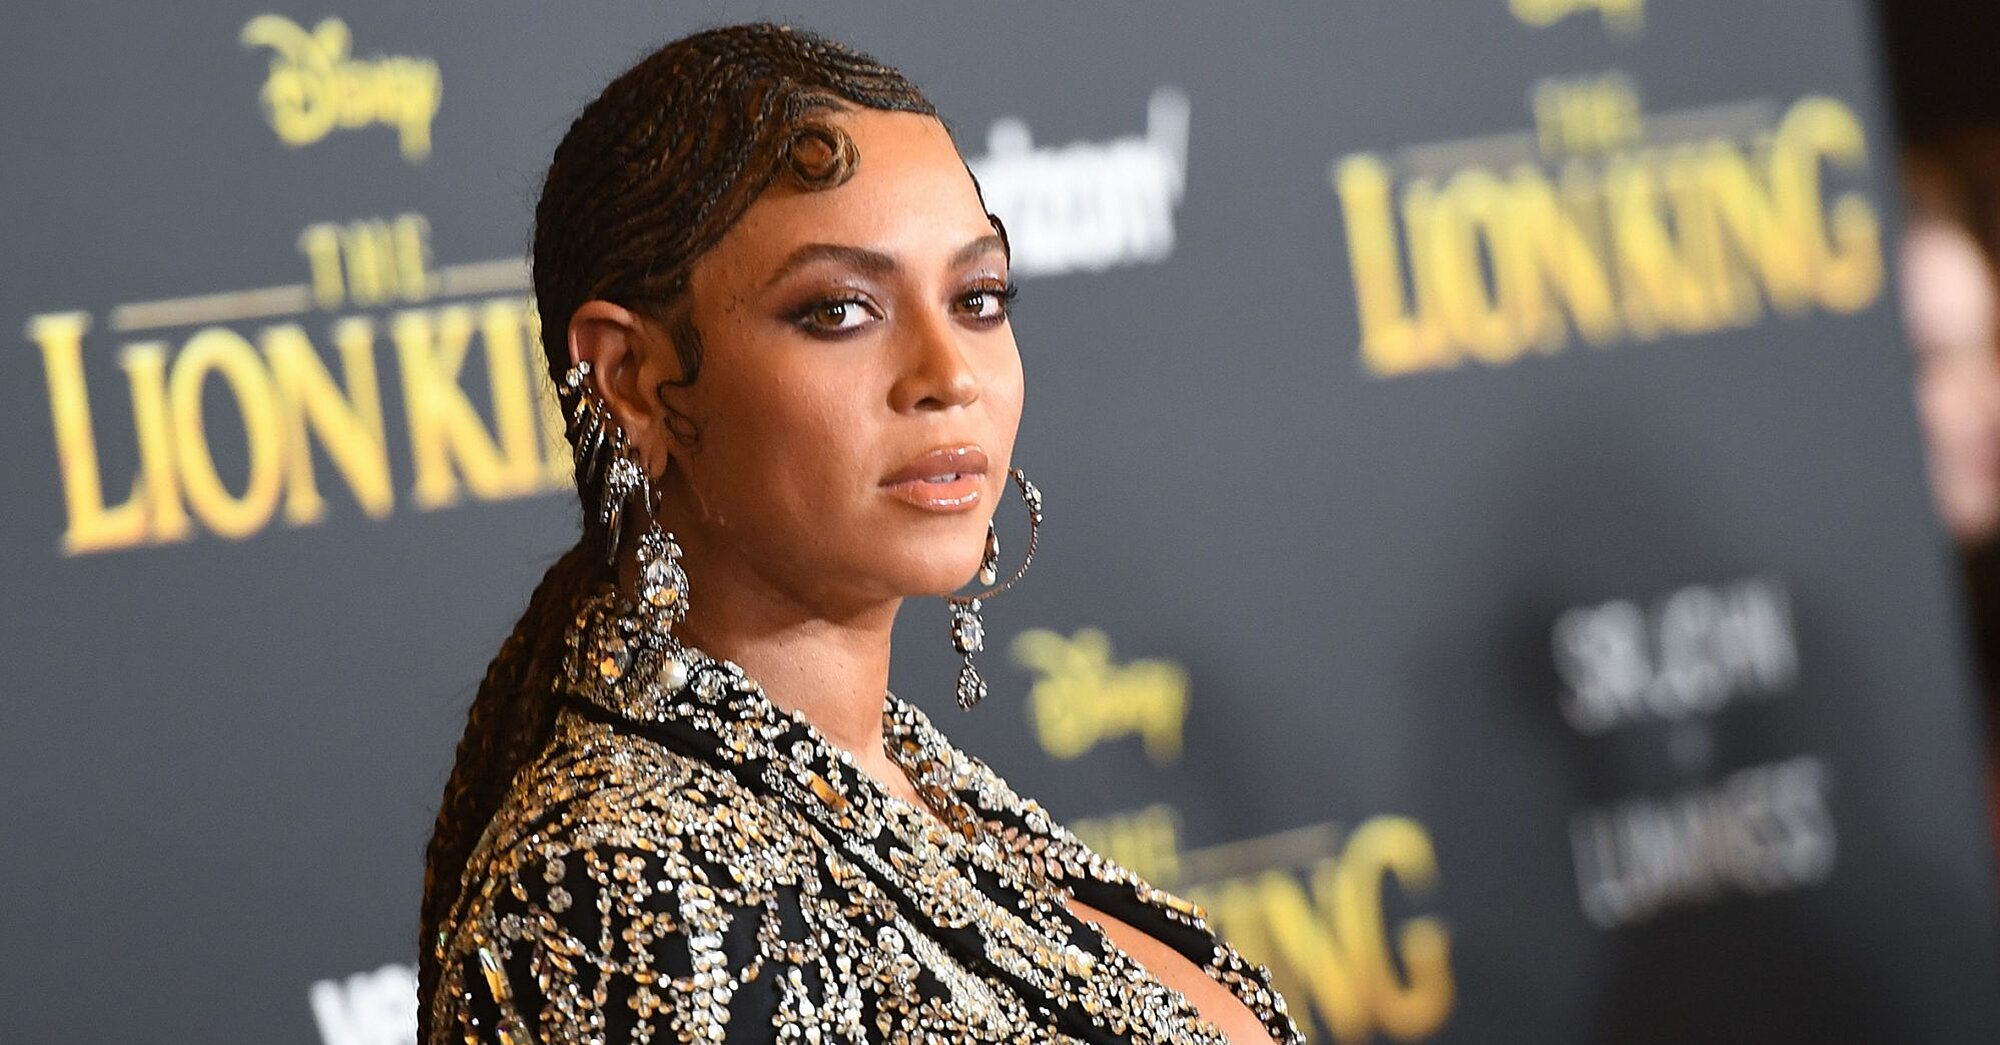 Beyoncé Shared Ways You Can Demand Justice for George Floyd